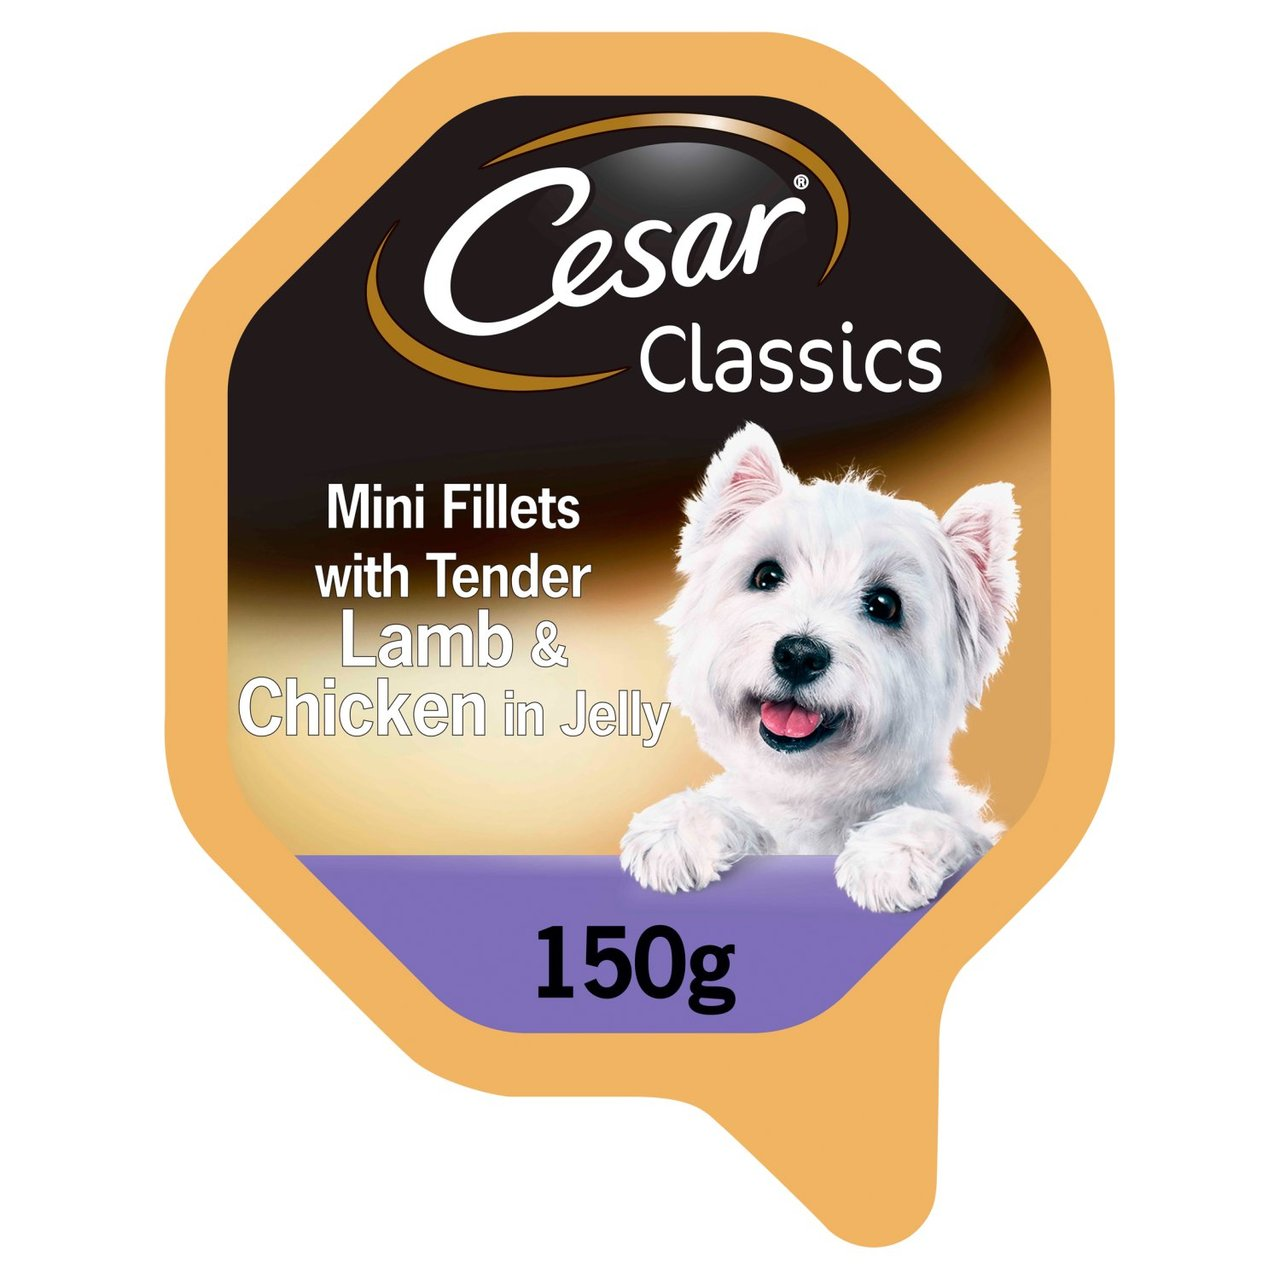 An image of Cesar Classics Tray Lamb & Chicken in Jelly